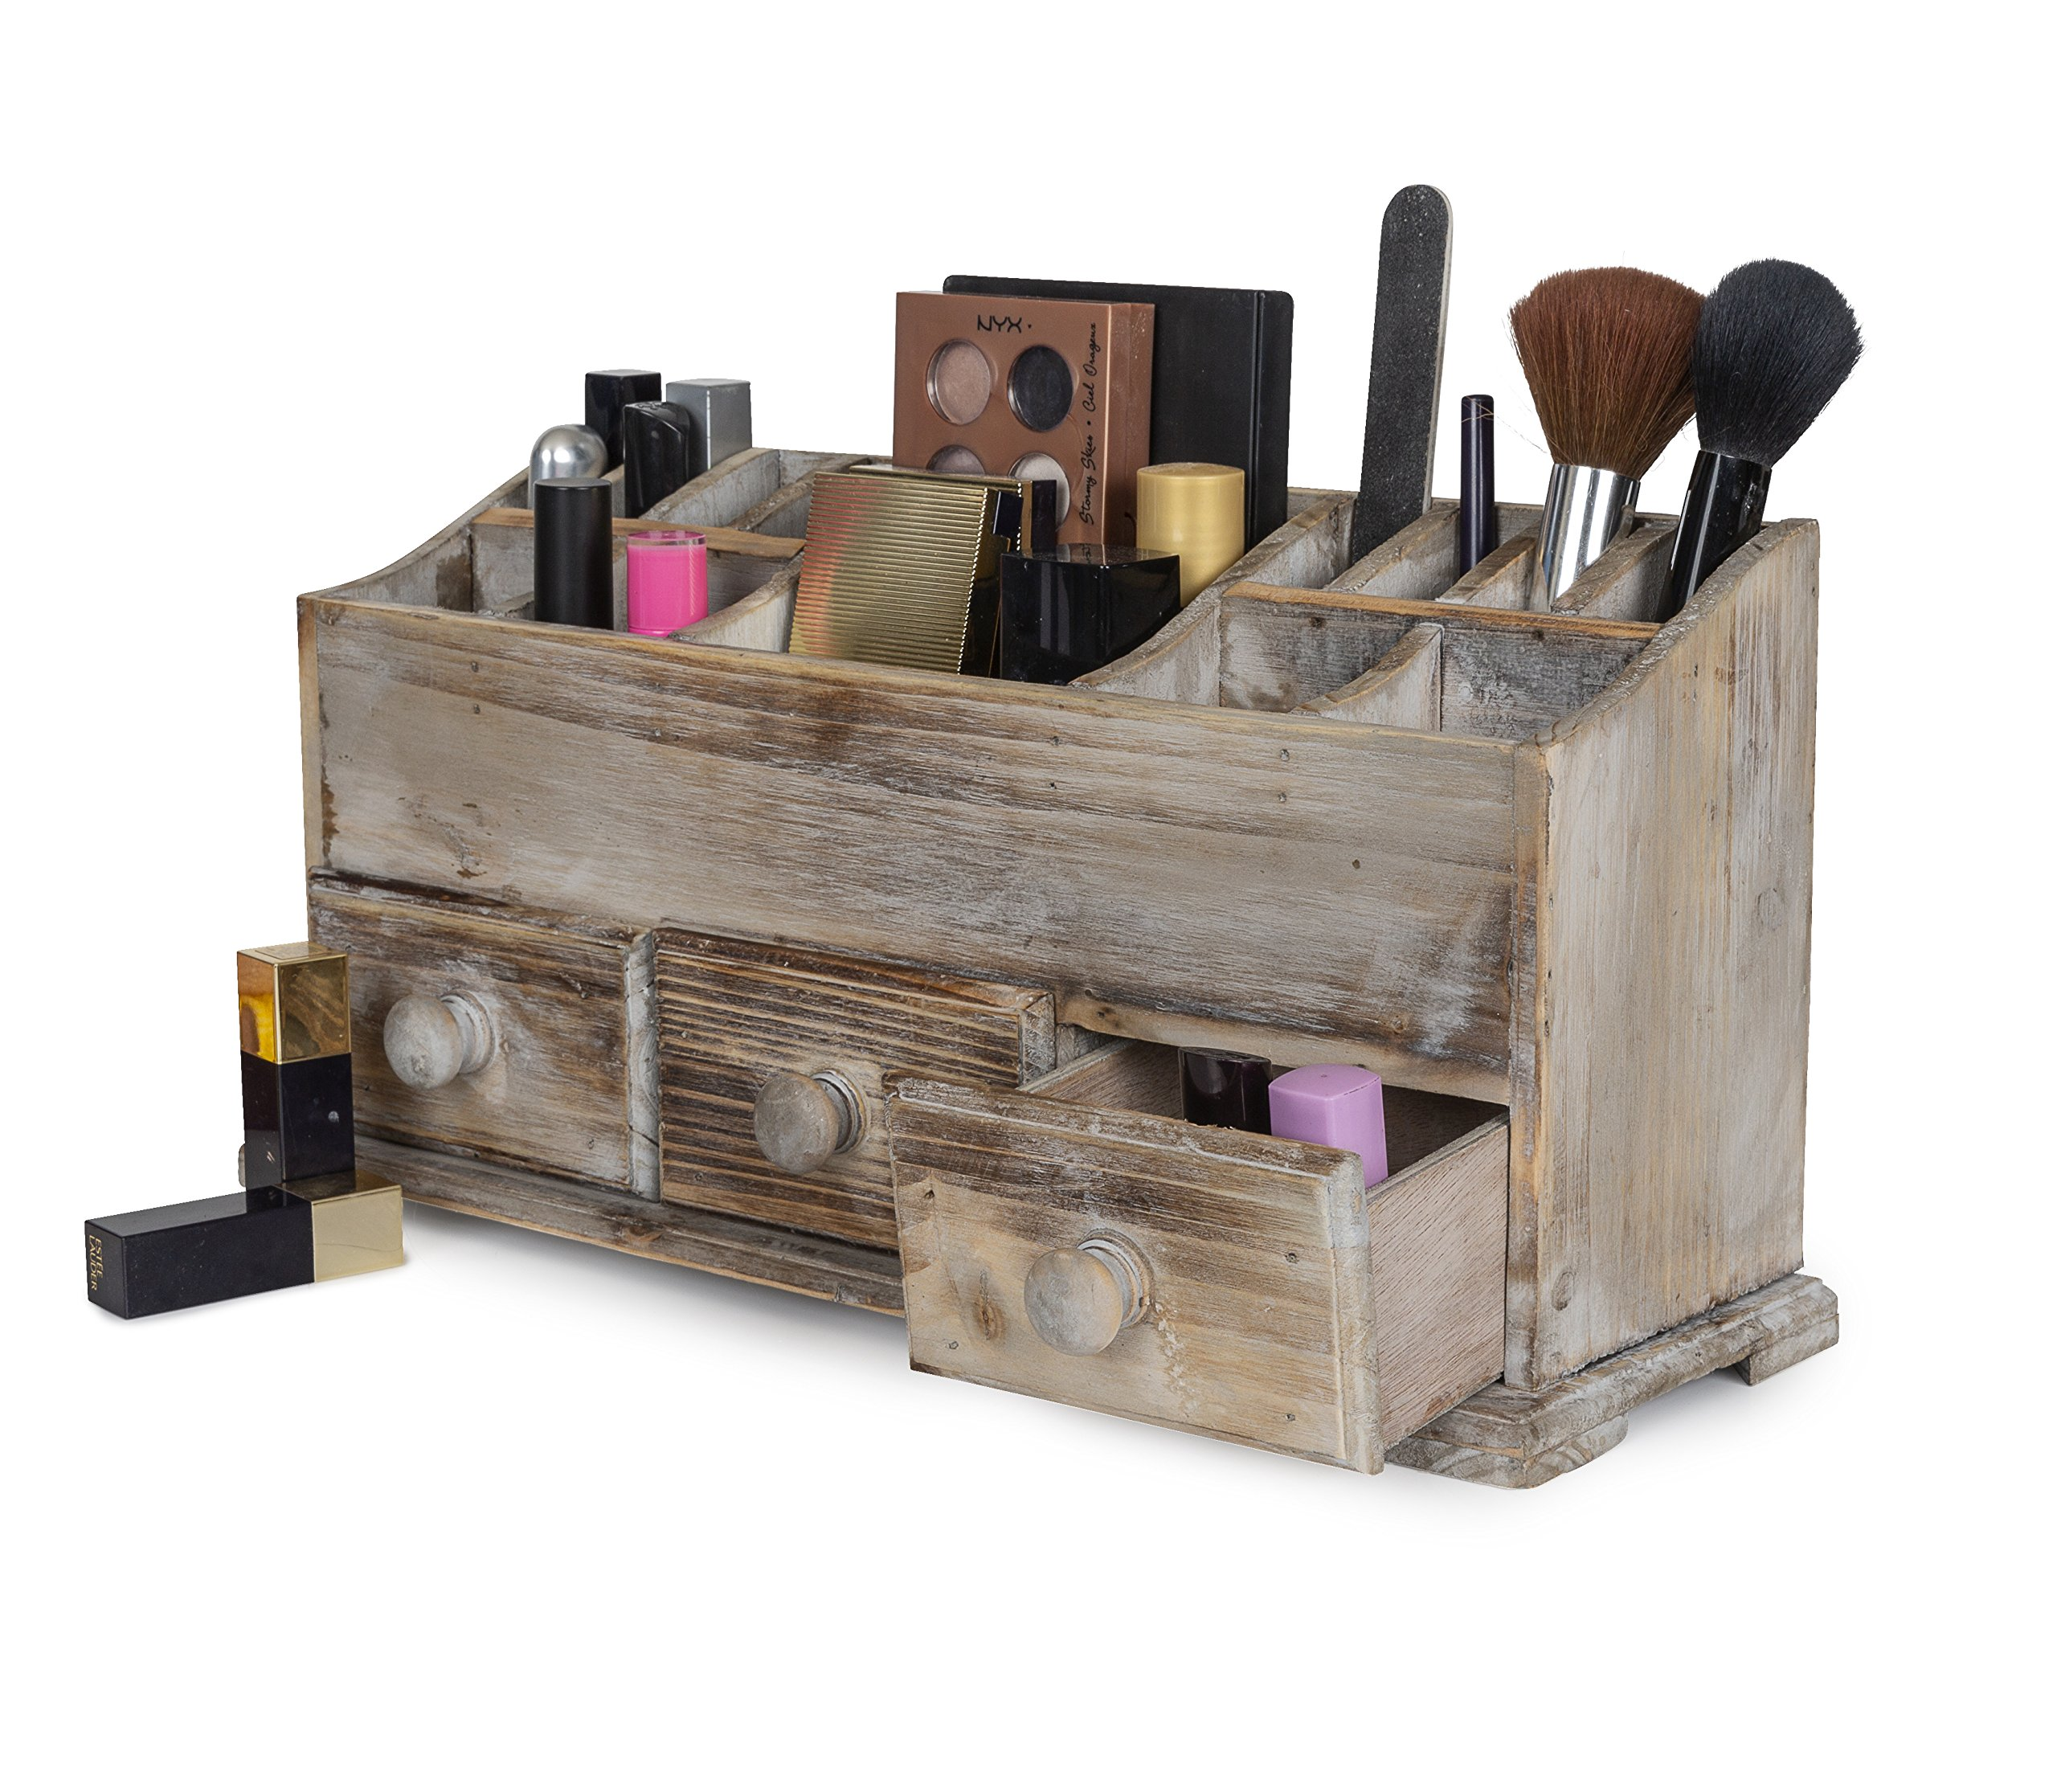 Vanity Drawer Beauty Organizer 3 Drawers - Wooden Cosmetic Storage Box for Neat & Organize Storing of Makeup Tools, Small Accessories at Home & Office Vanities & Bathroom Counter-top (Rustic) by Besti